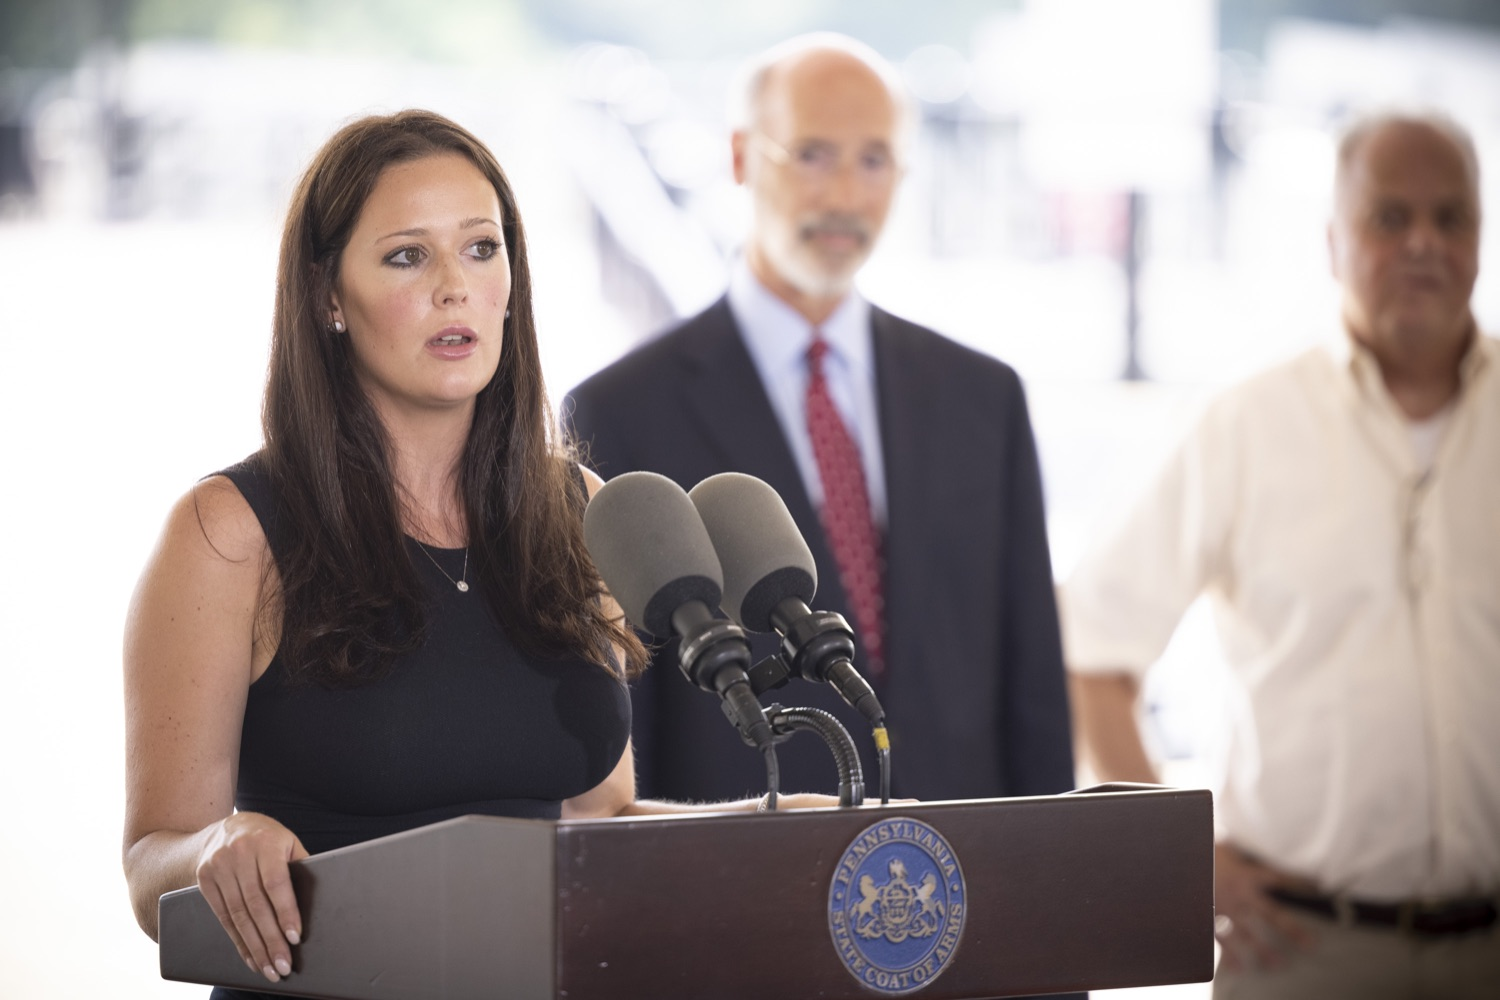 """<a href=""""https://filesource.wostreaming.net/commonwealthofpa/photo/18932_gov_chirp_dz_018.jpg"""" target=""""_blank"""">⇣Download Photo<br></a>Dana Pezza, Owner, Itri Wood Fired speaking with the press.  Governor Tom Wolf today joined the Pennsylvania Department of Community and Economic Development, Bucks County Commissioners, Bristol Borough Mayor Joseph Saxton, local lawmakers, Bucks County Economic Development Corporation, Visit Bucks County, the Bucks County Redevelopment Authority, and the owners of Itri Wood Fired to highlight the $7 million in grant funding provided to Bucks County restaurants through the COVID-19 Hospitality Industry Recovery Program(CHIRP).  JULY 16, 2021 - BRISTOL, PA"""